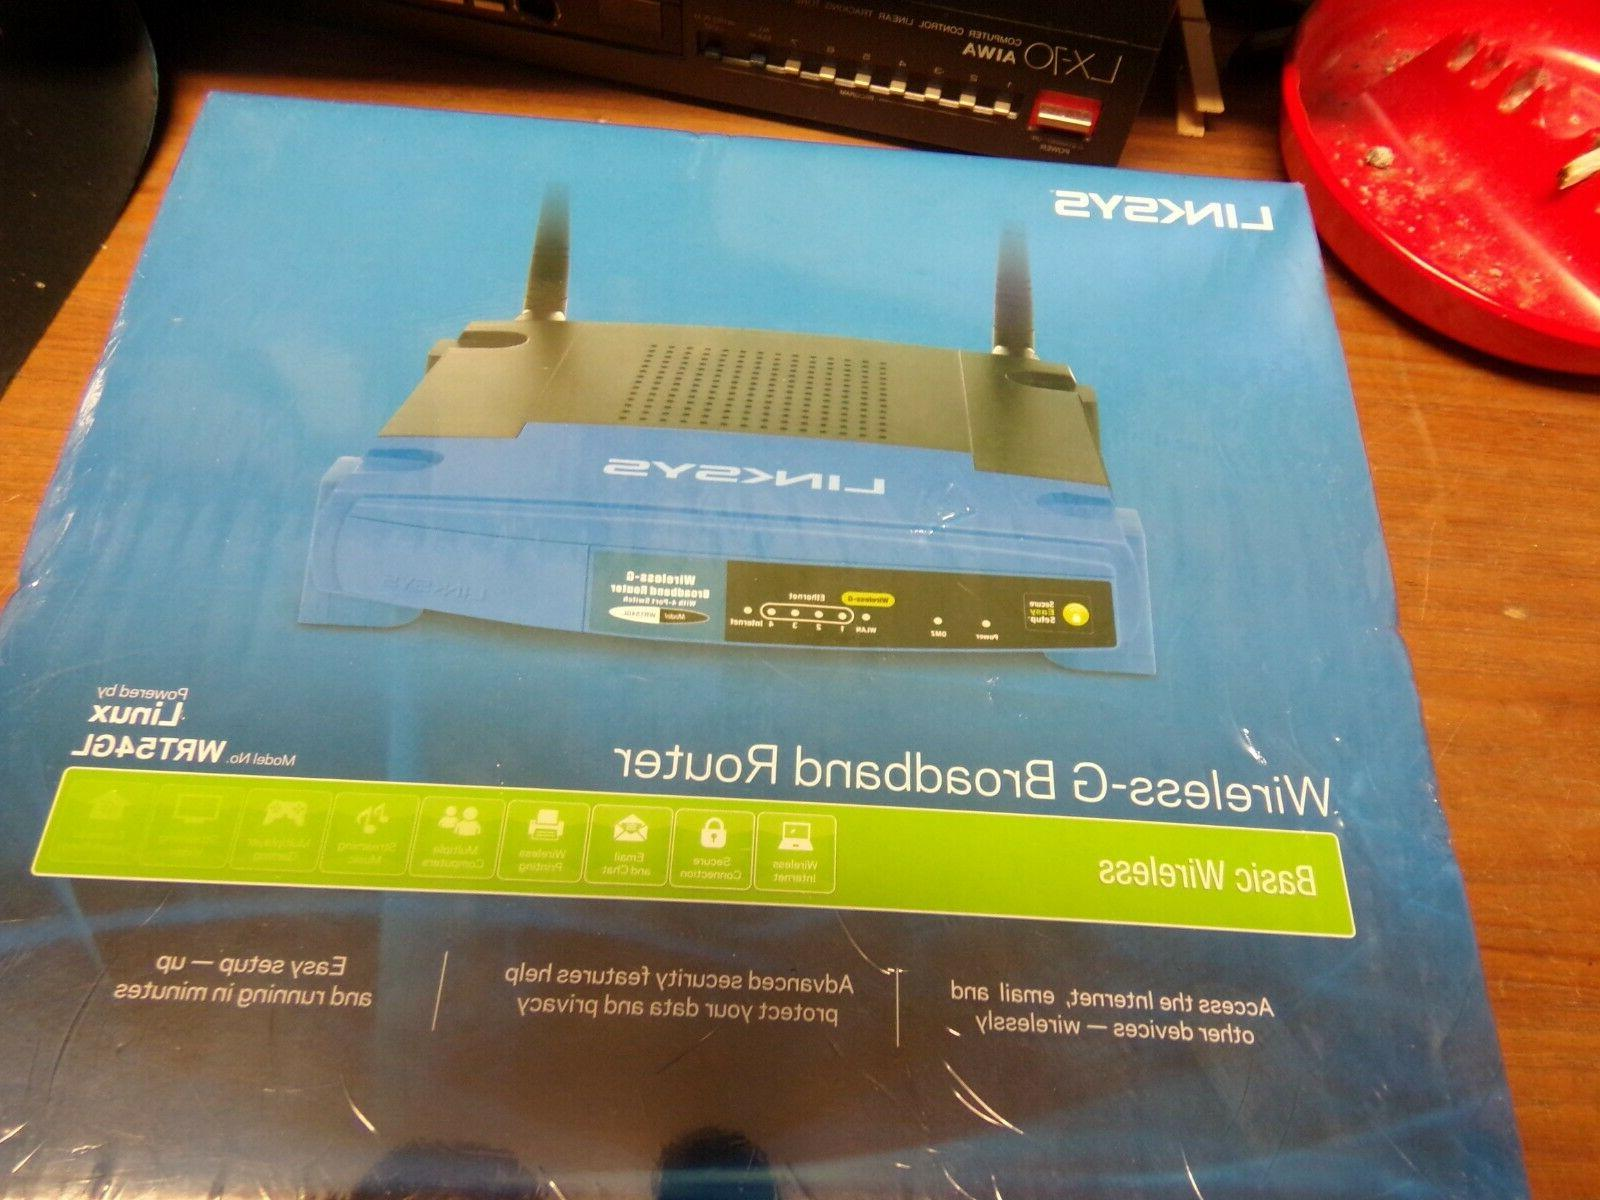 New Linksys 2.4Ghz Wireless-G Broadband